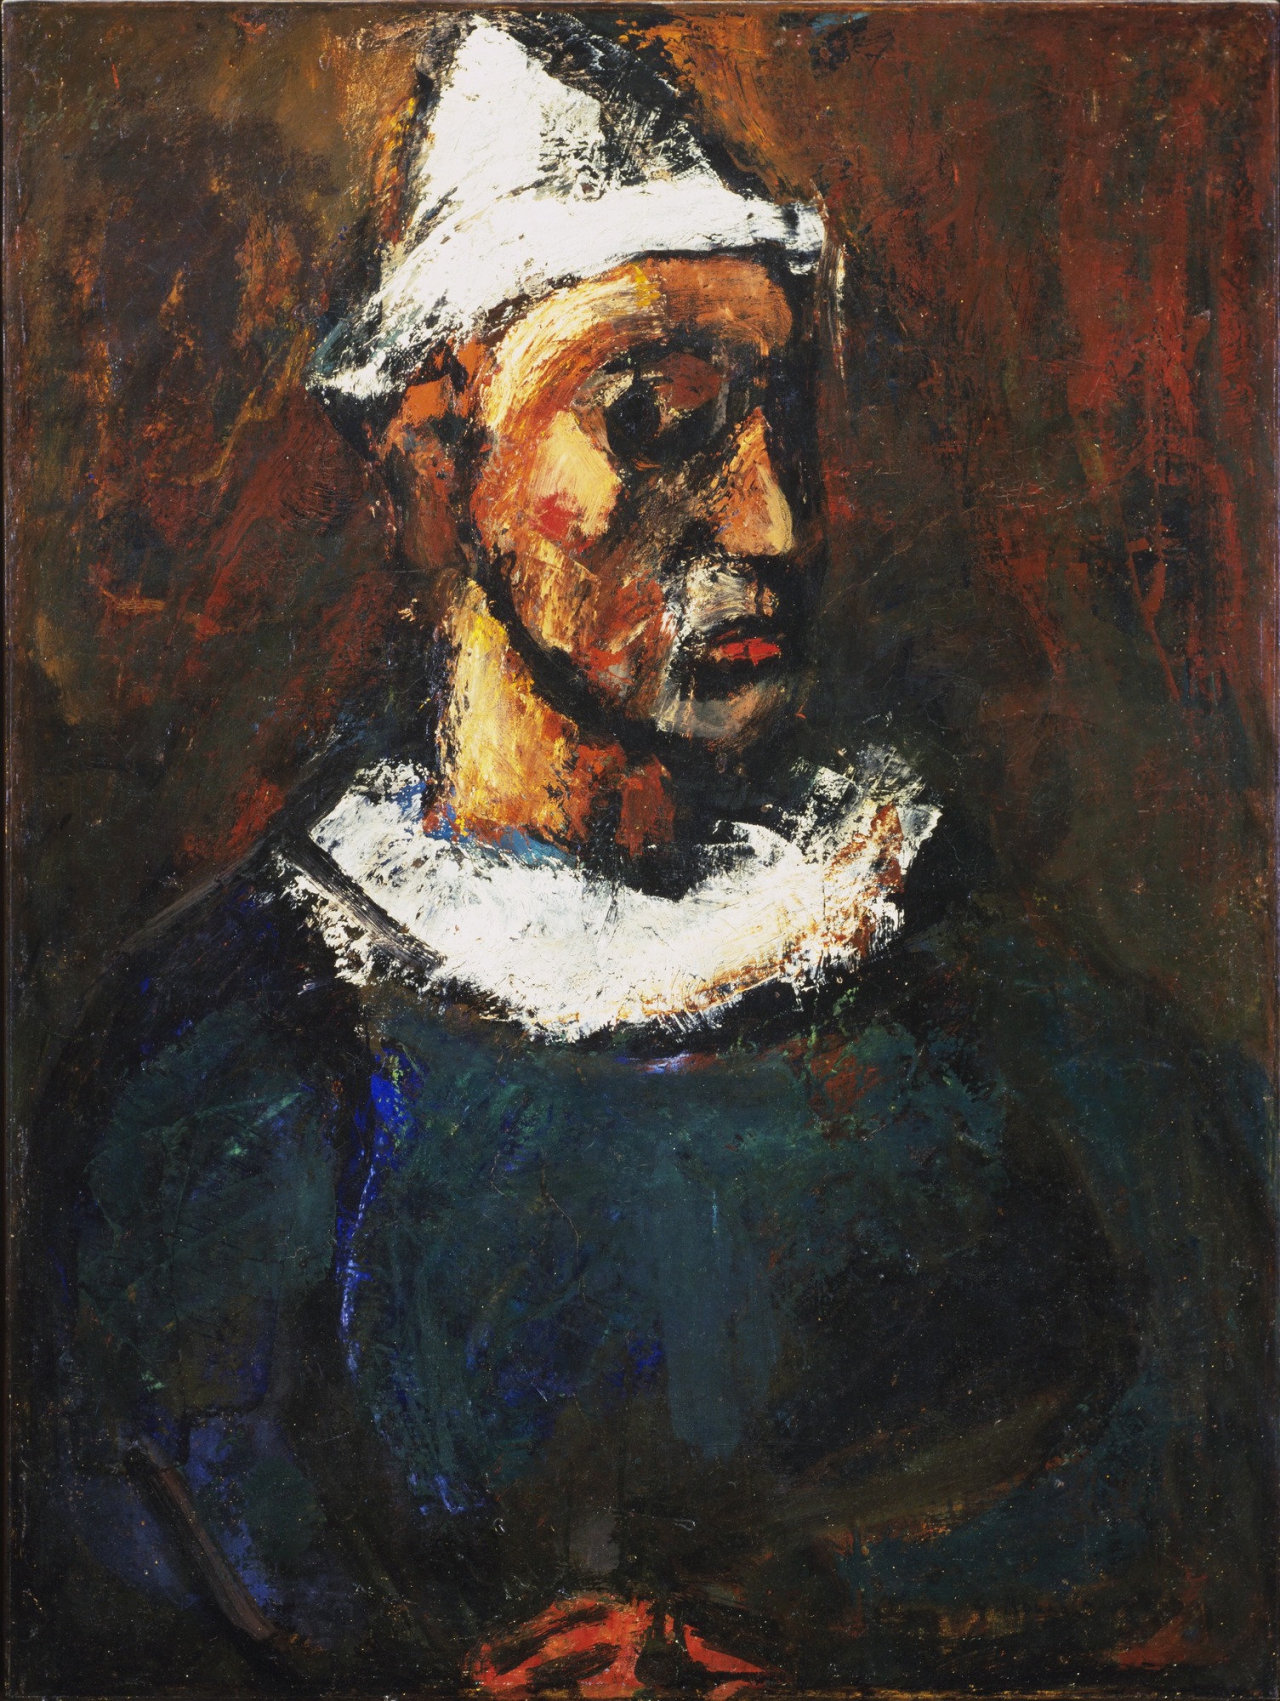 herzogtum-sachsen-weissenfels: Georges Rouault (French, 1871-1958), Clown, 1912. Oil on canvas, 89.8 x 68.2 cm.